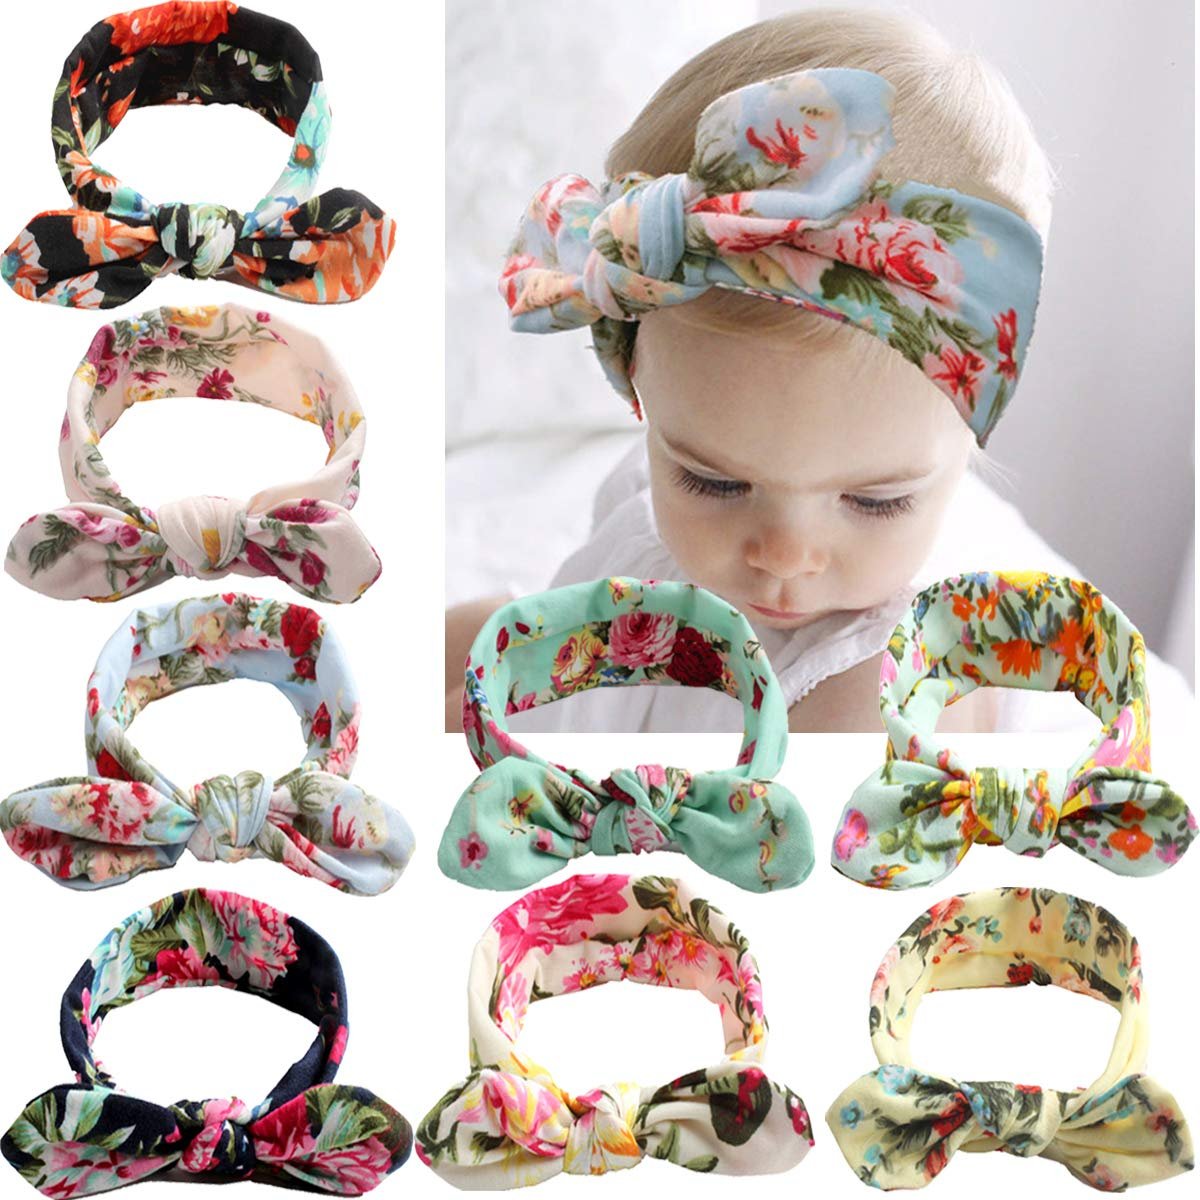 JOYOYO Baby Girls Headbands Hair Bows Turban Knotted Head Bands for Newborn,Toddler and Children Pack of 8